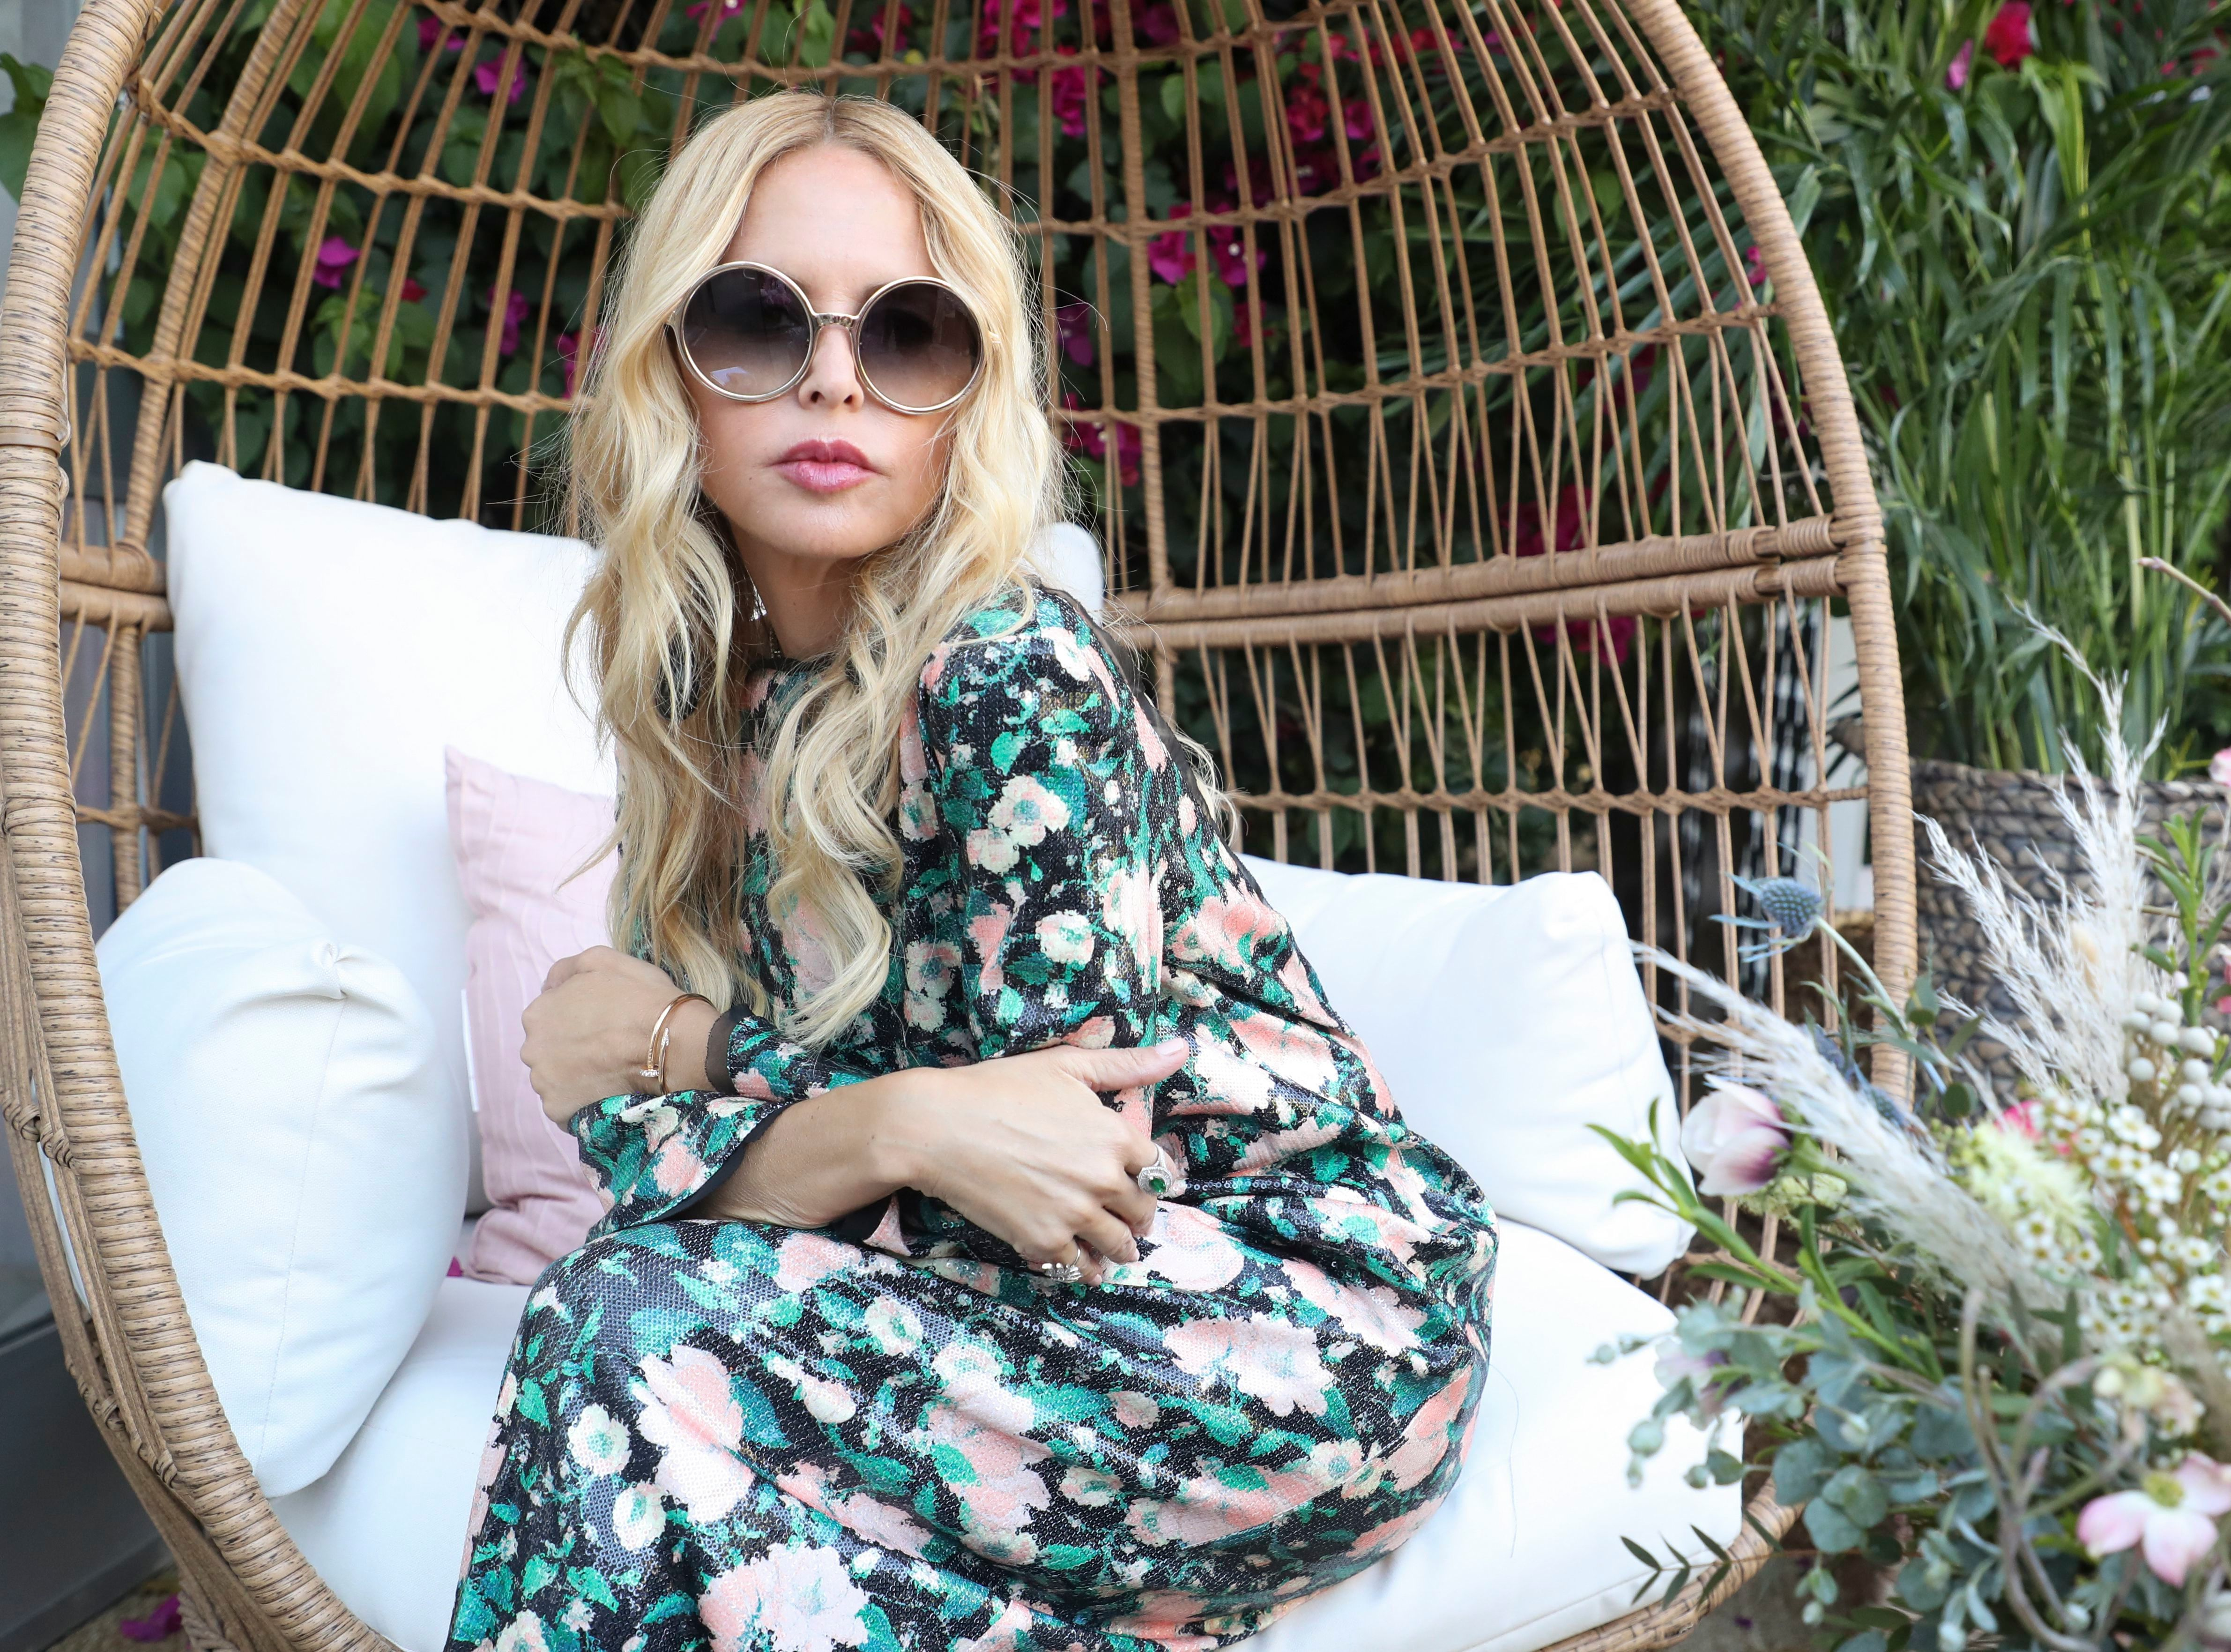 Rachel Zoe5th Annual ZOEasis Party, Coachella Valley Music and Arts Festival, Weekend 1, Day 1, Palm Springs, USA - 12 Apr 2019